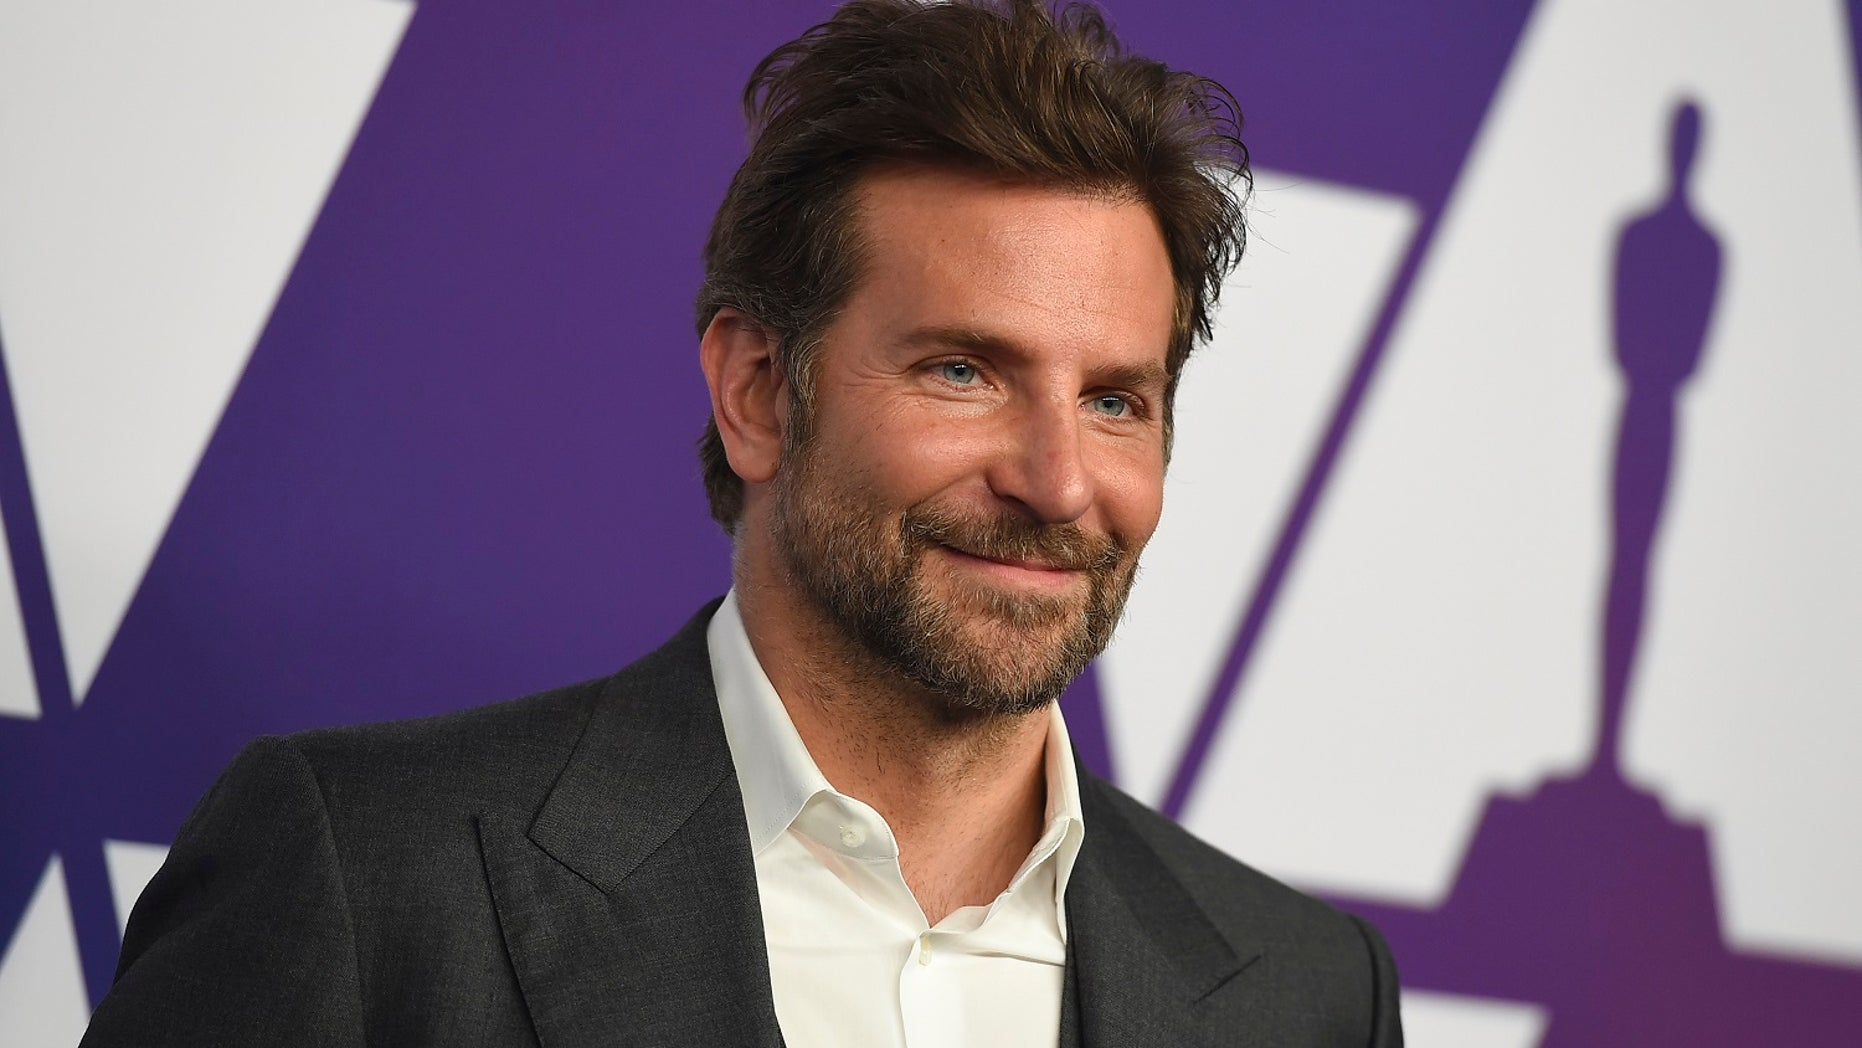 Bradley Cooper Discusses Oscars Snub: